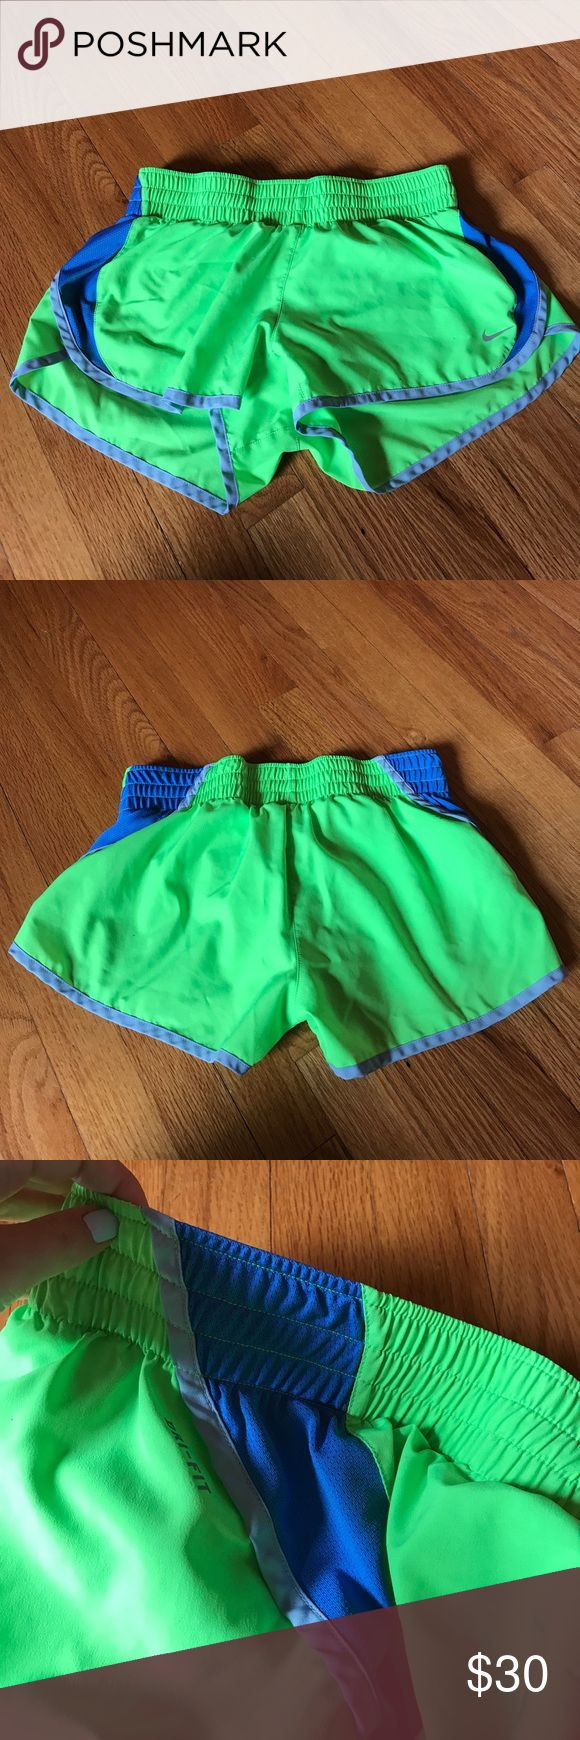 Nike dri-fit shorts Neon green shorts with blue mesh on both sides. Elastic waist. Built in lining on inside. Nike Shorts